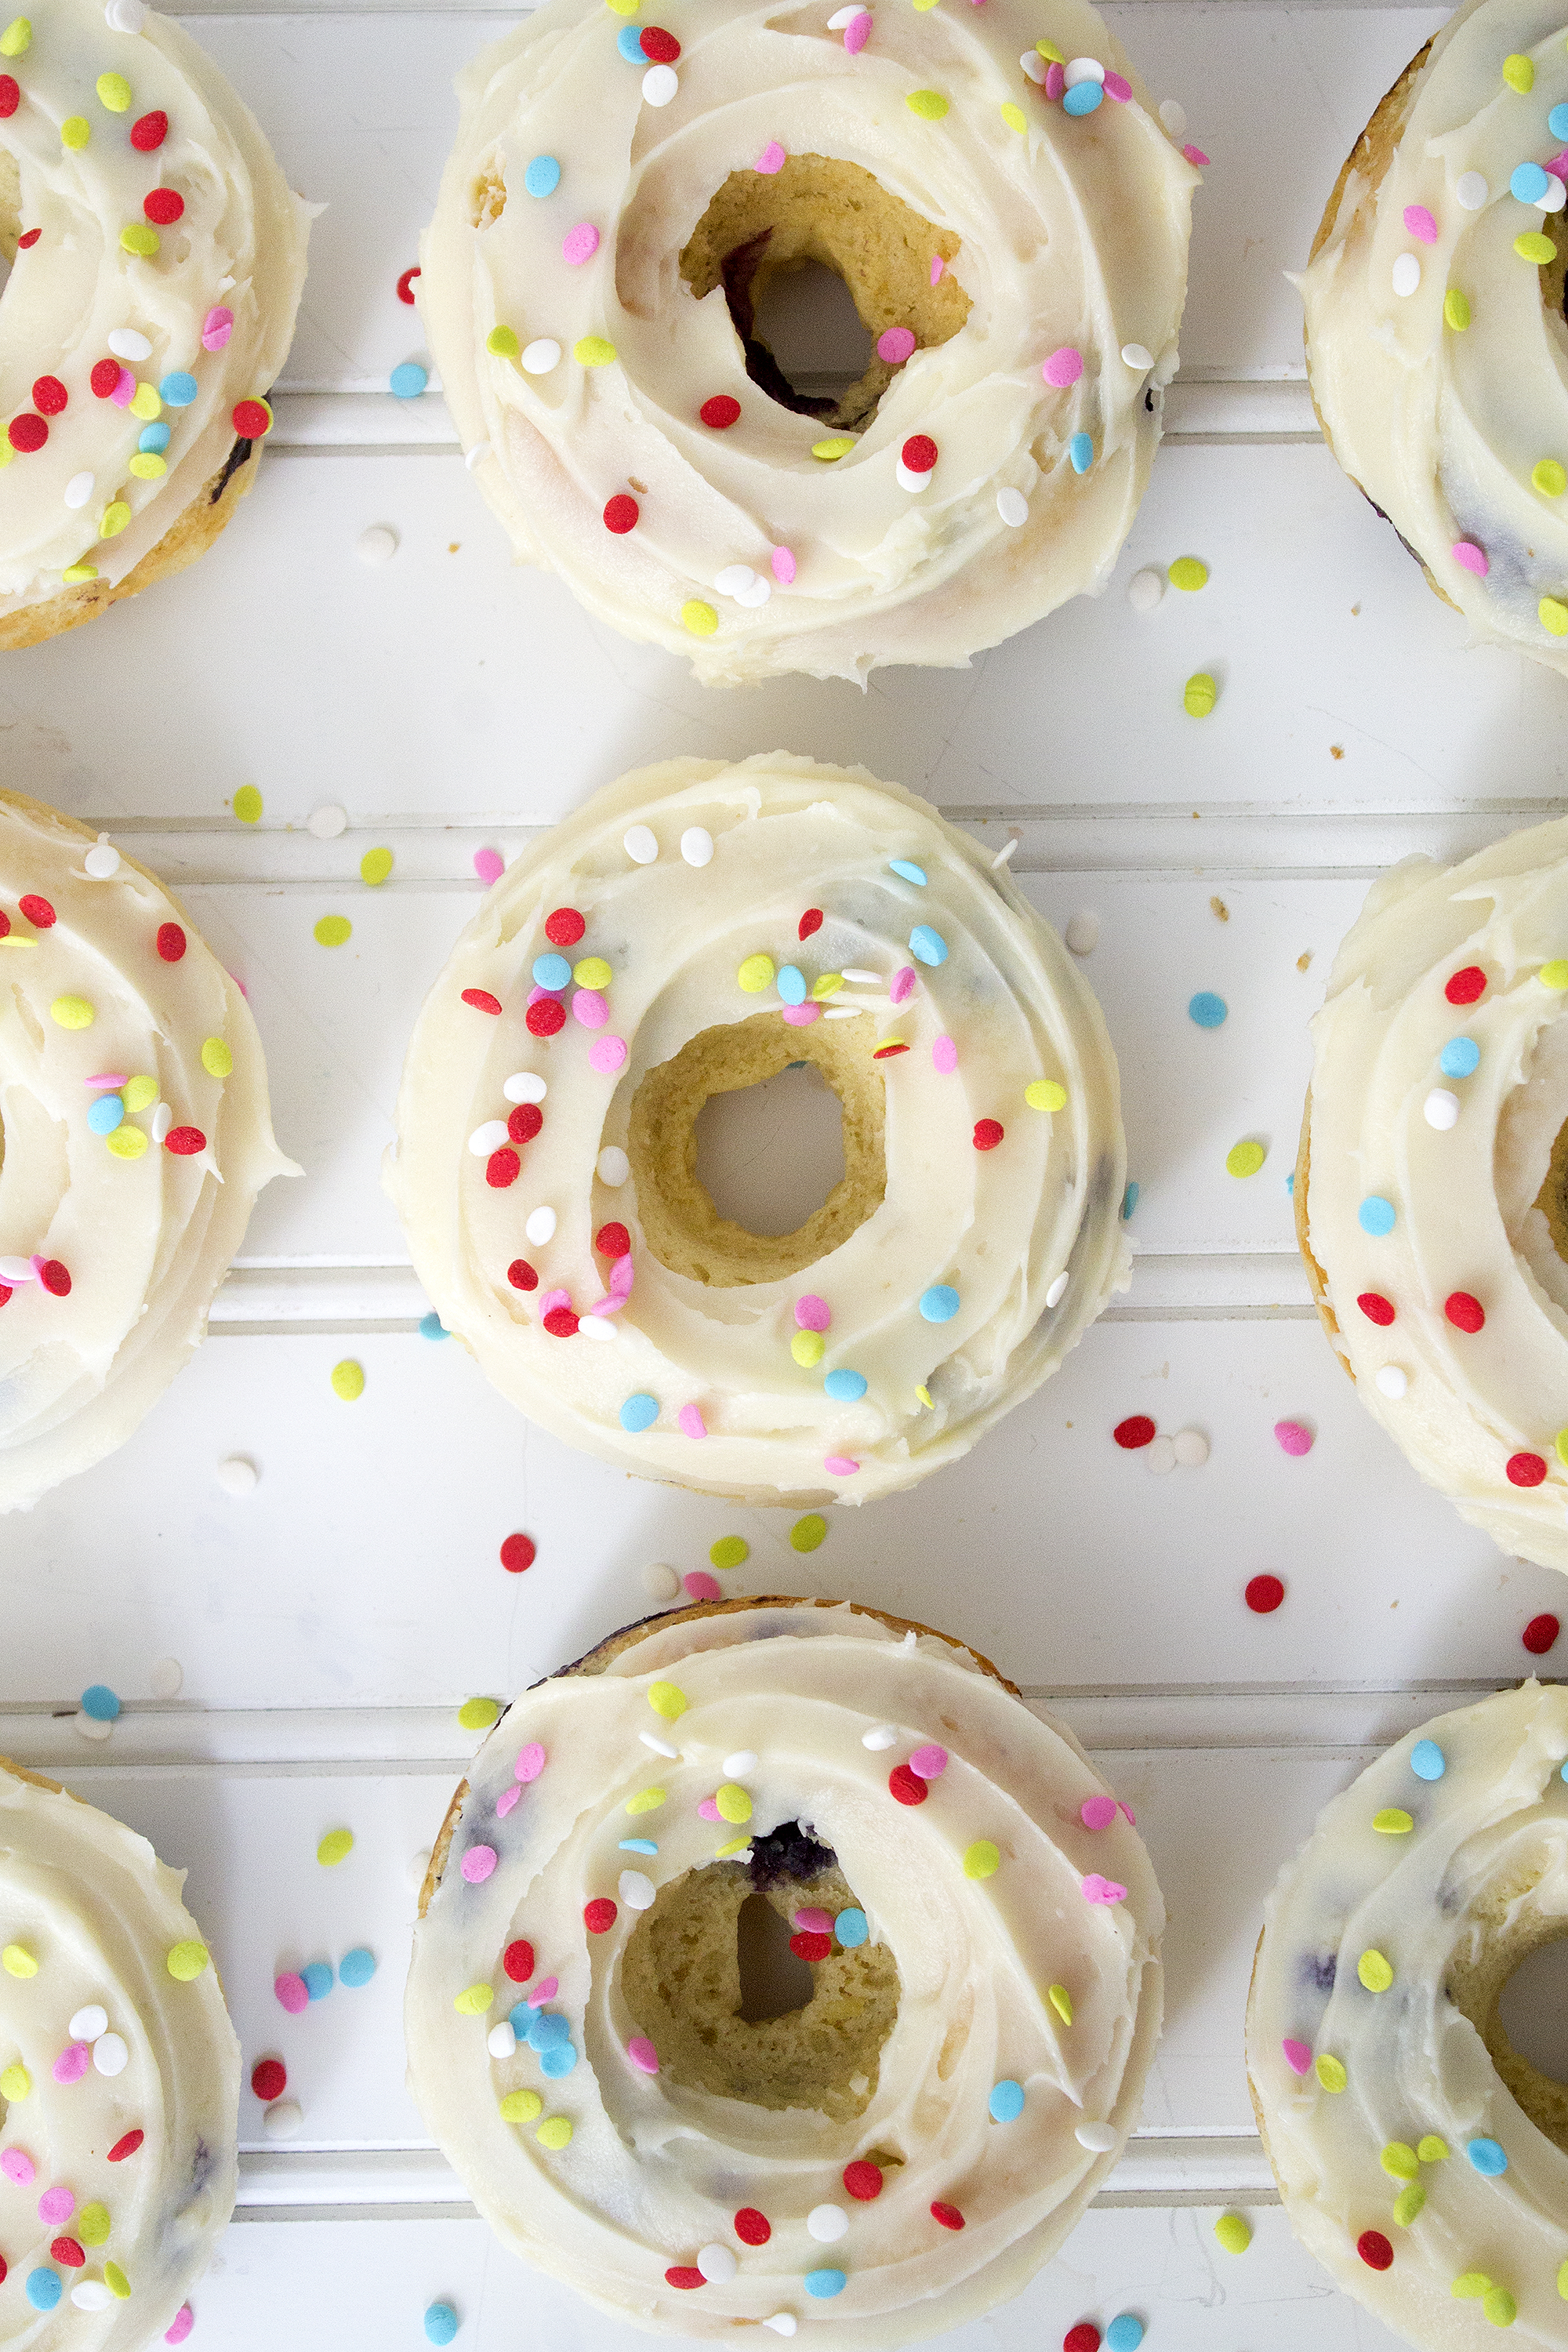 Sprinkles make everything better! Get the recipe for these Blueberry and Lemon Donuts topped with Cream Cheese Frosting. Unusuallylovely.com